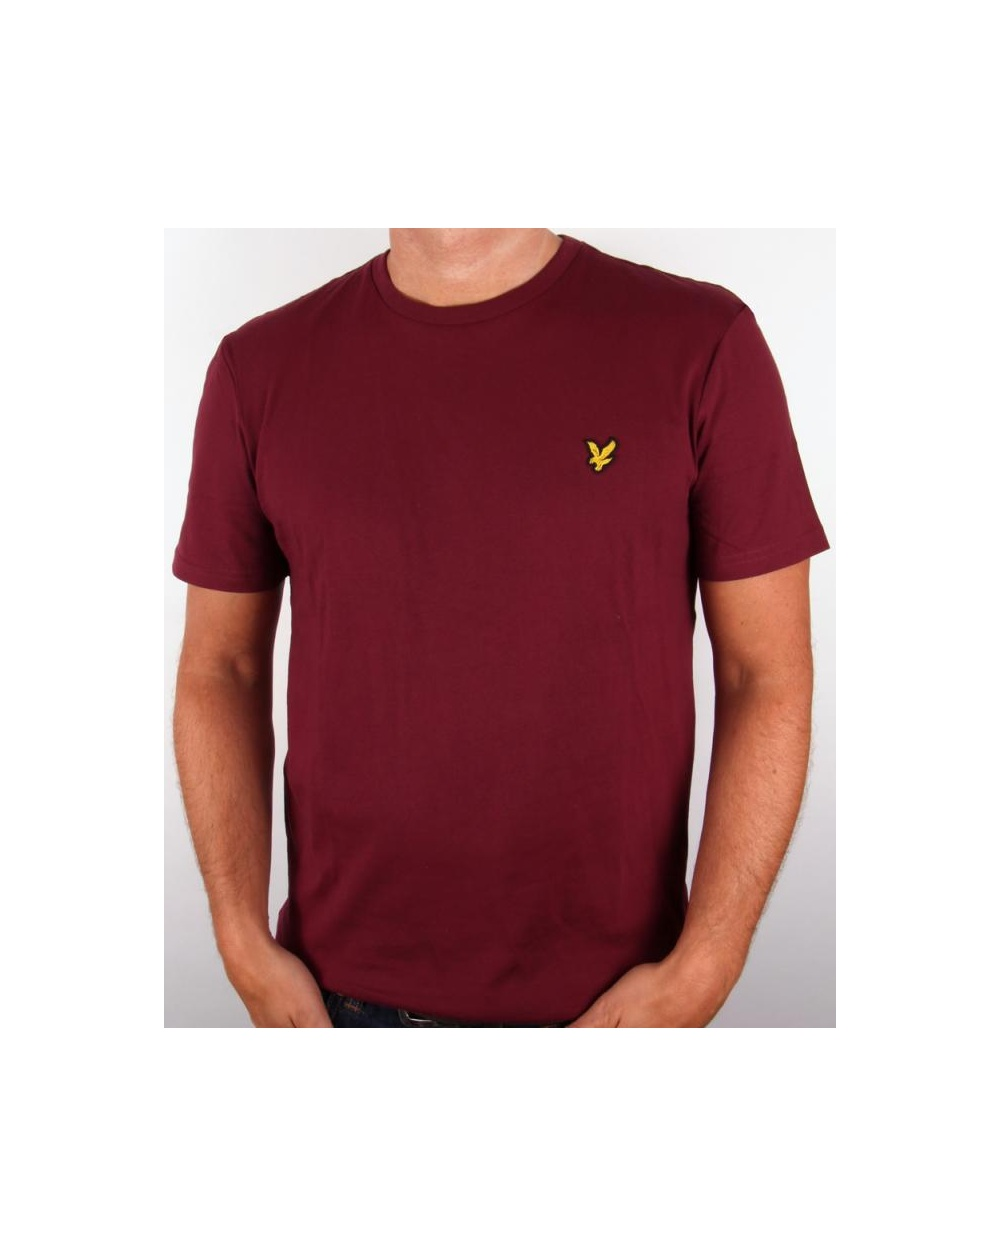 lyle and scott t shirt claret jug lyle scott t shirt. Black Bedroom Furniture Sets. Home Design Ideas